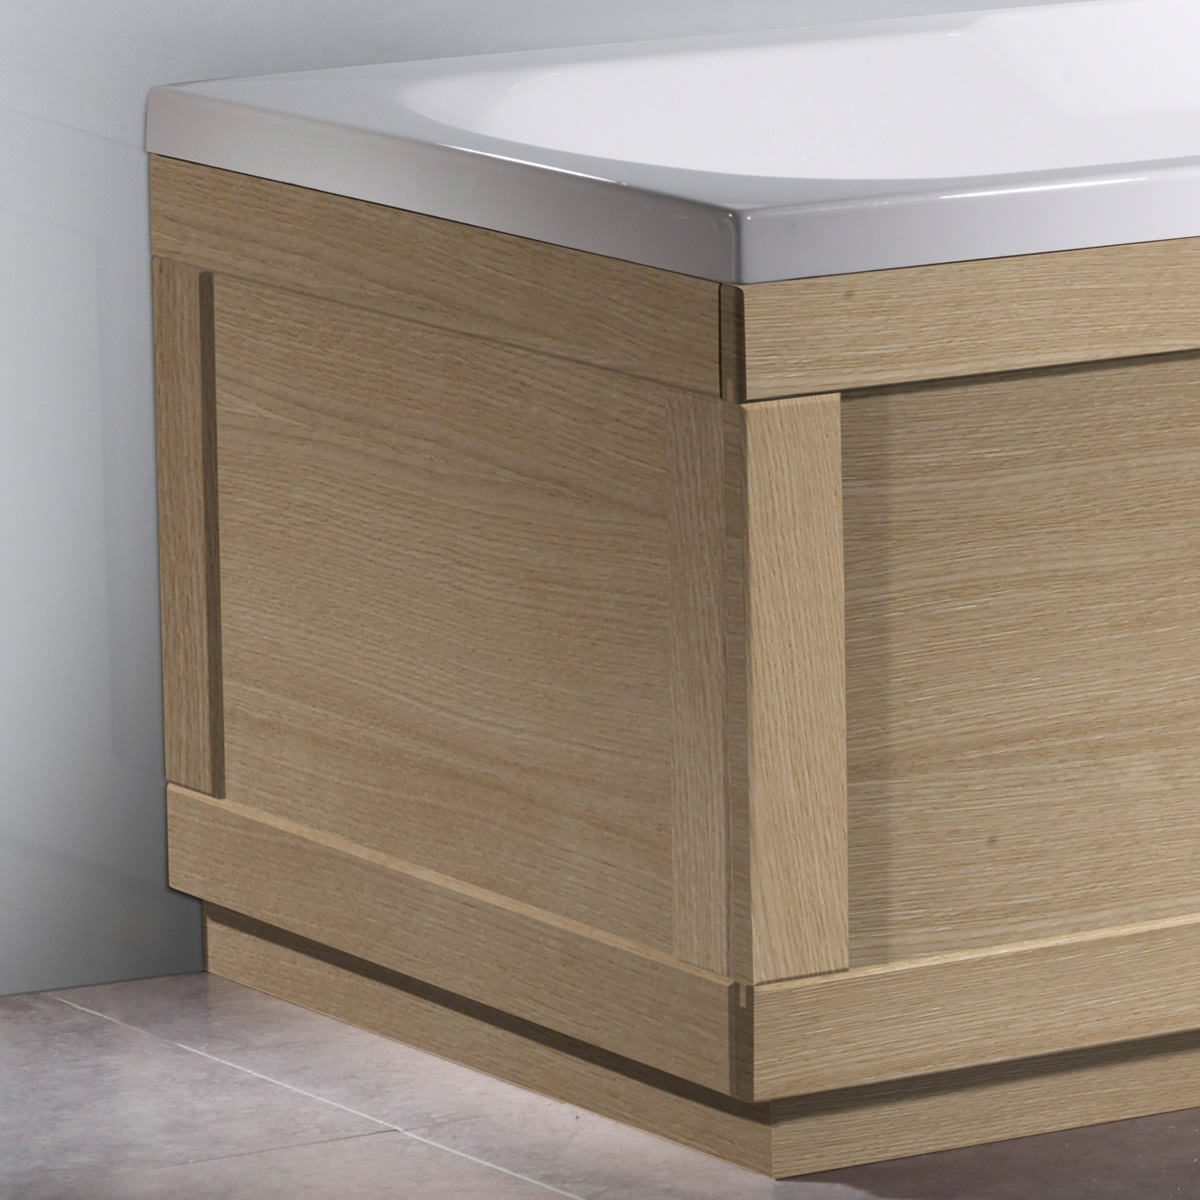 Superb img of Roper Rhodes 800 Series Natural Oak End Bath Panel 700mm BP801NO with #7C664F color and 1200x1200 pixels